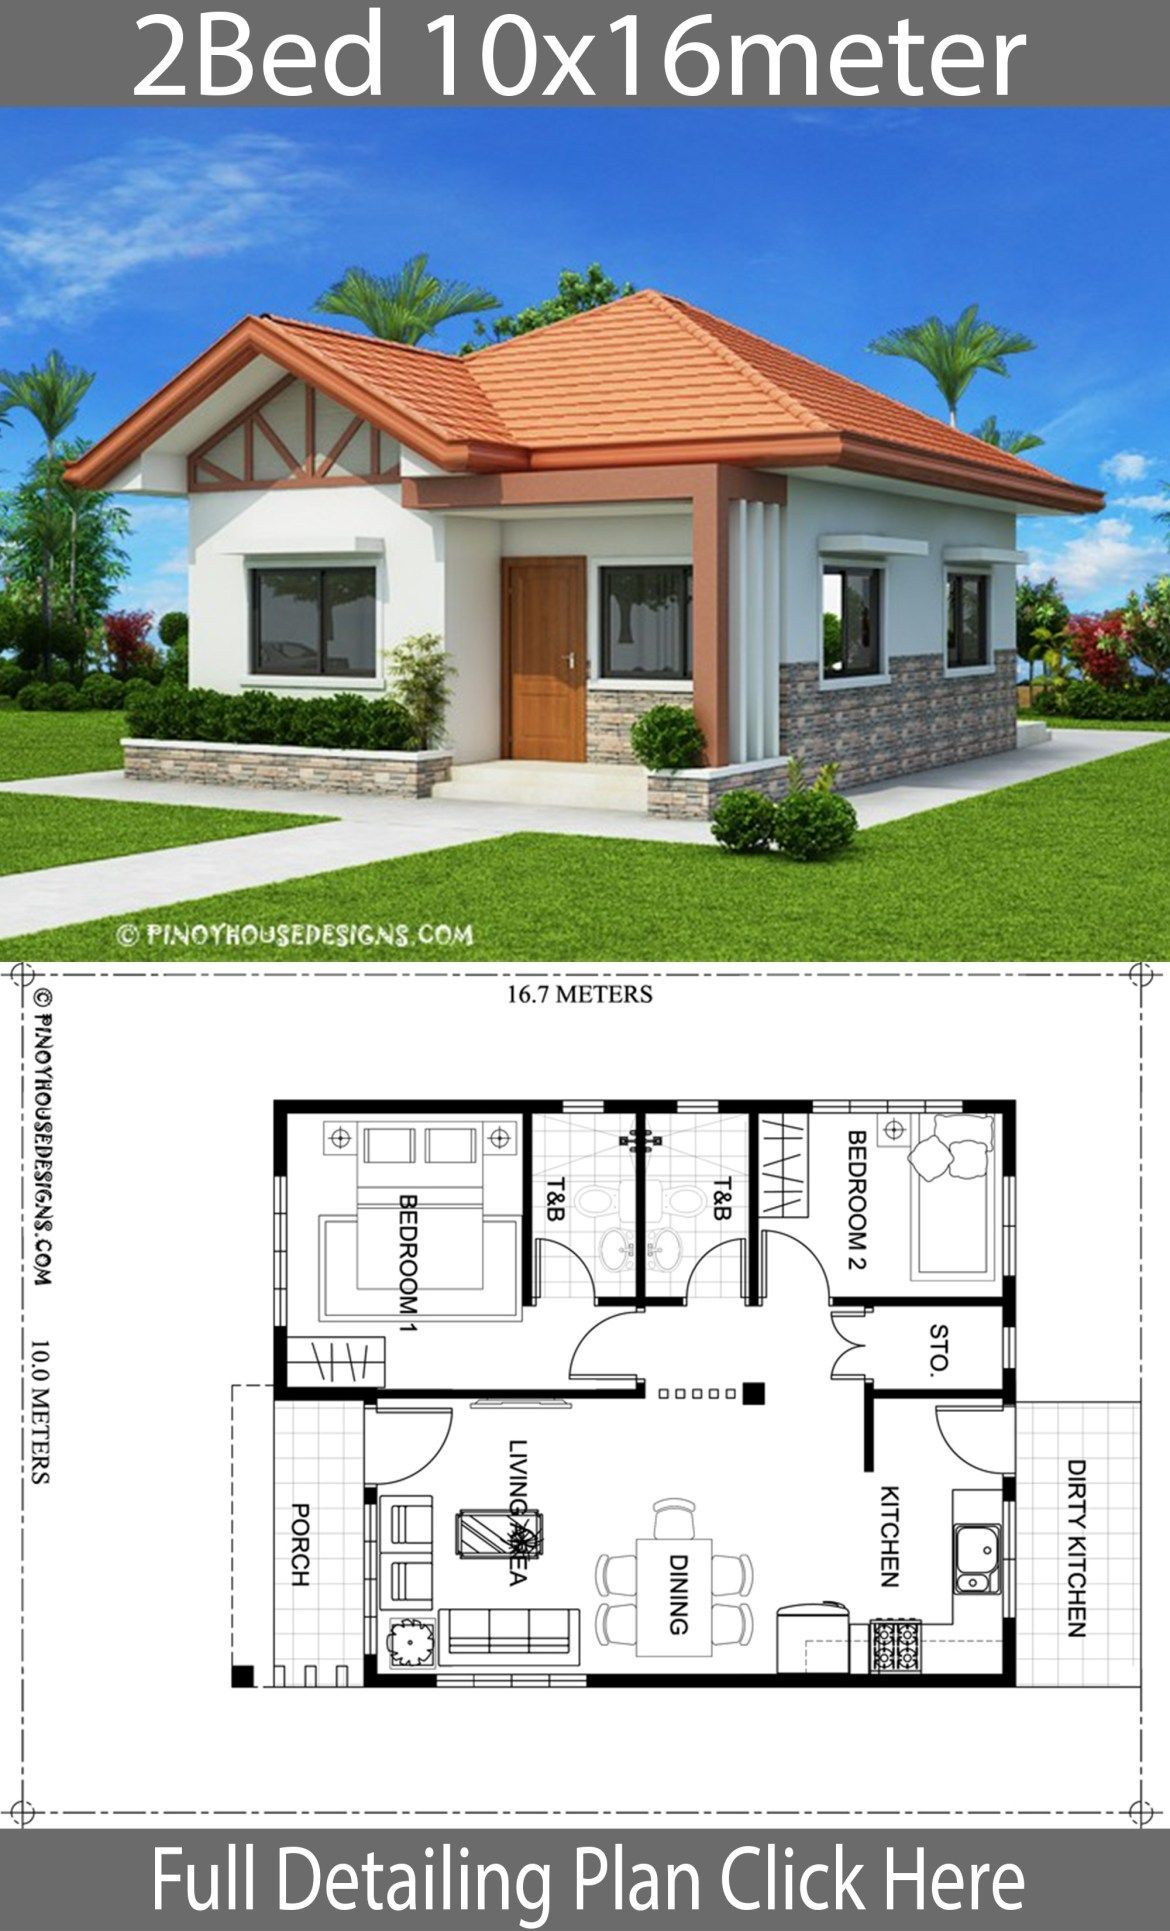 Home Design Plan 10x16m With 2 Bedrooms House Plans House Plans Affordable House Plans House Plans House Construction Plan